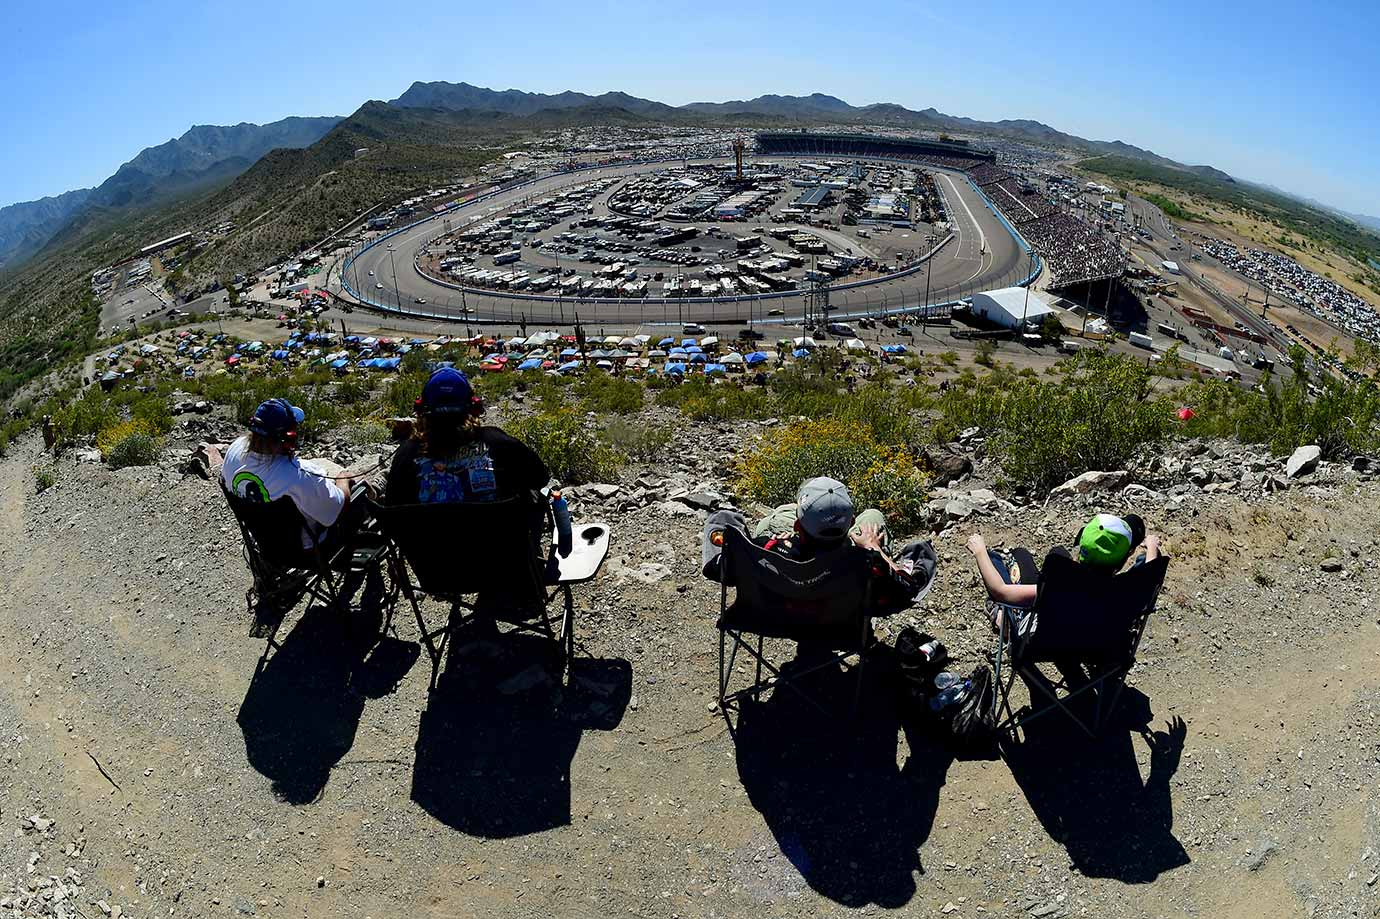 Race fans enjoy the action during the NASCAR Sprint Cup Series Good Sam 500 at Phoenix International Raceway in Avondale, Ariz.